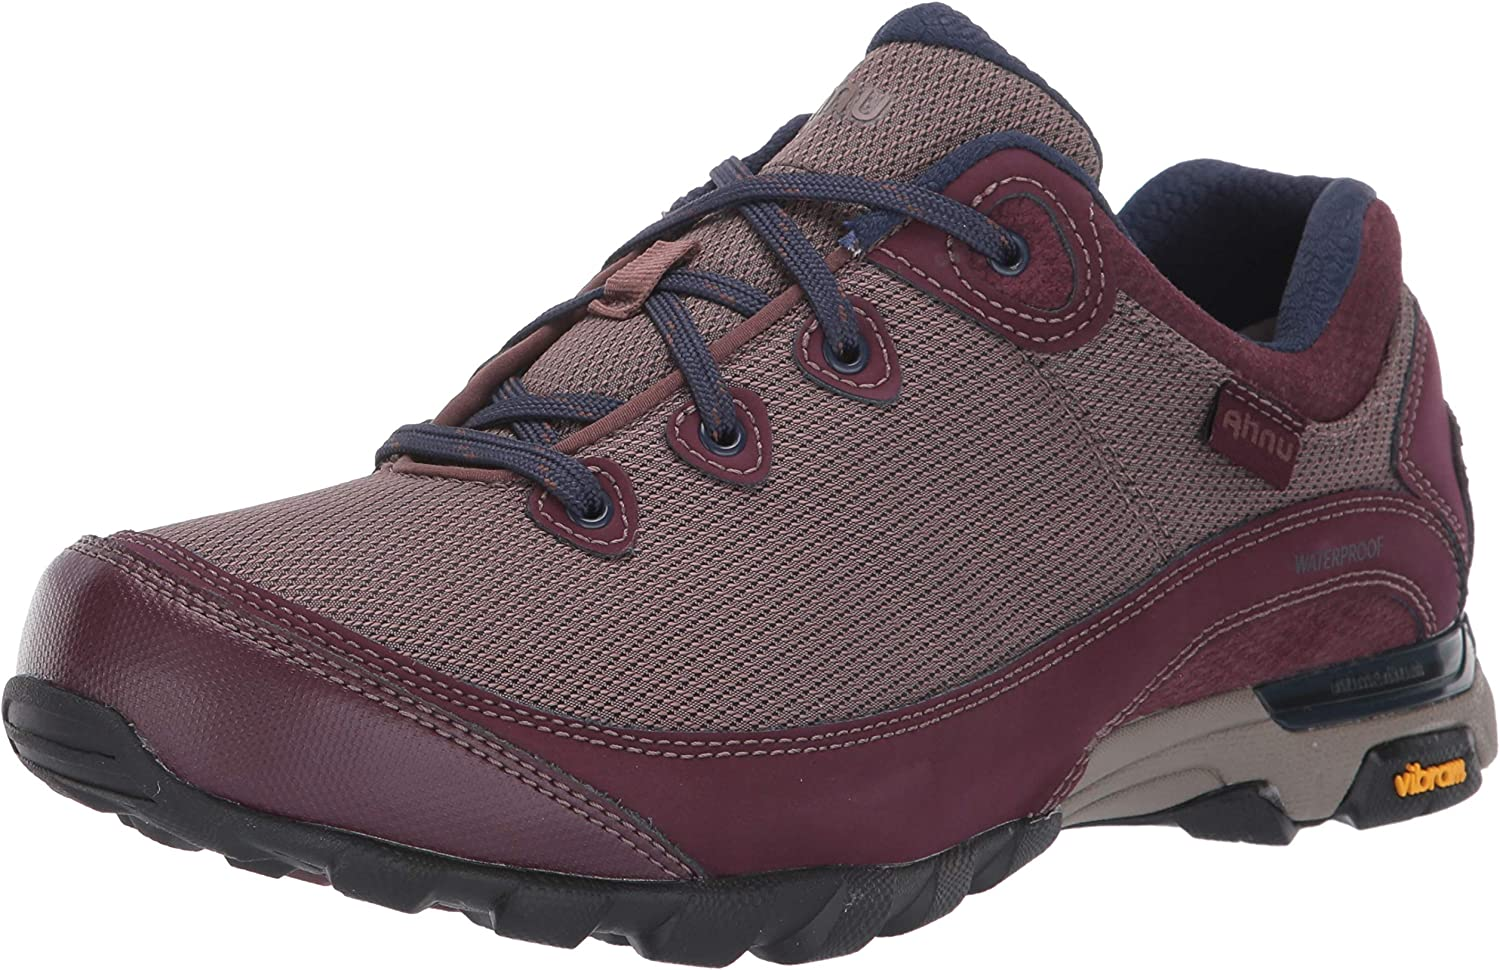 Teva Women's W Sugarpine II WP Ripstop Hiking Shoe